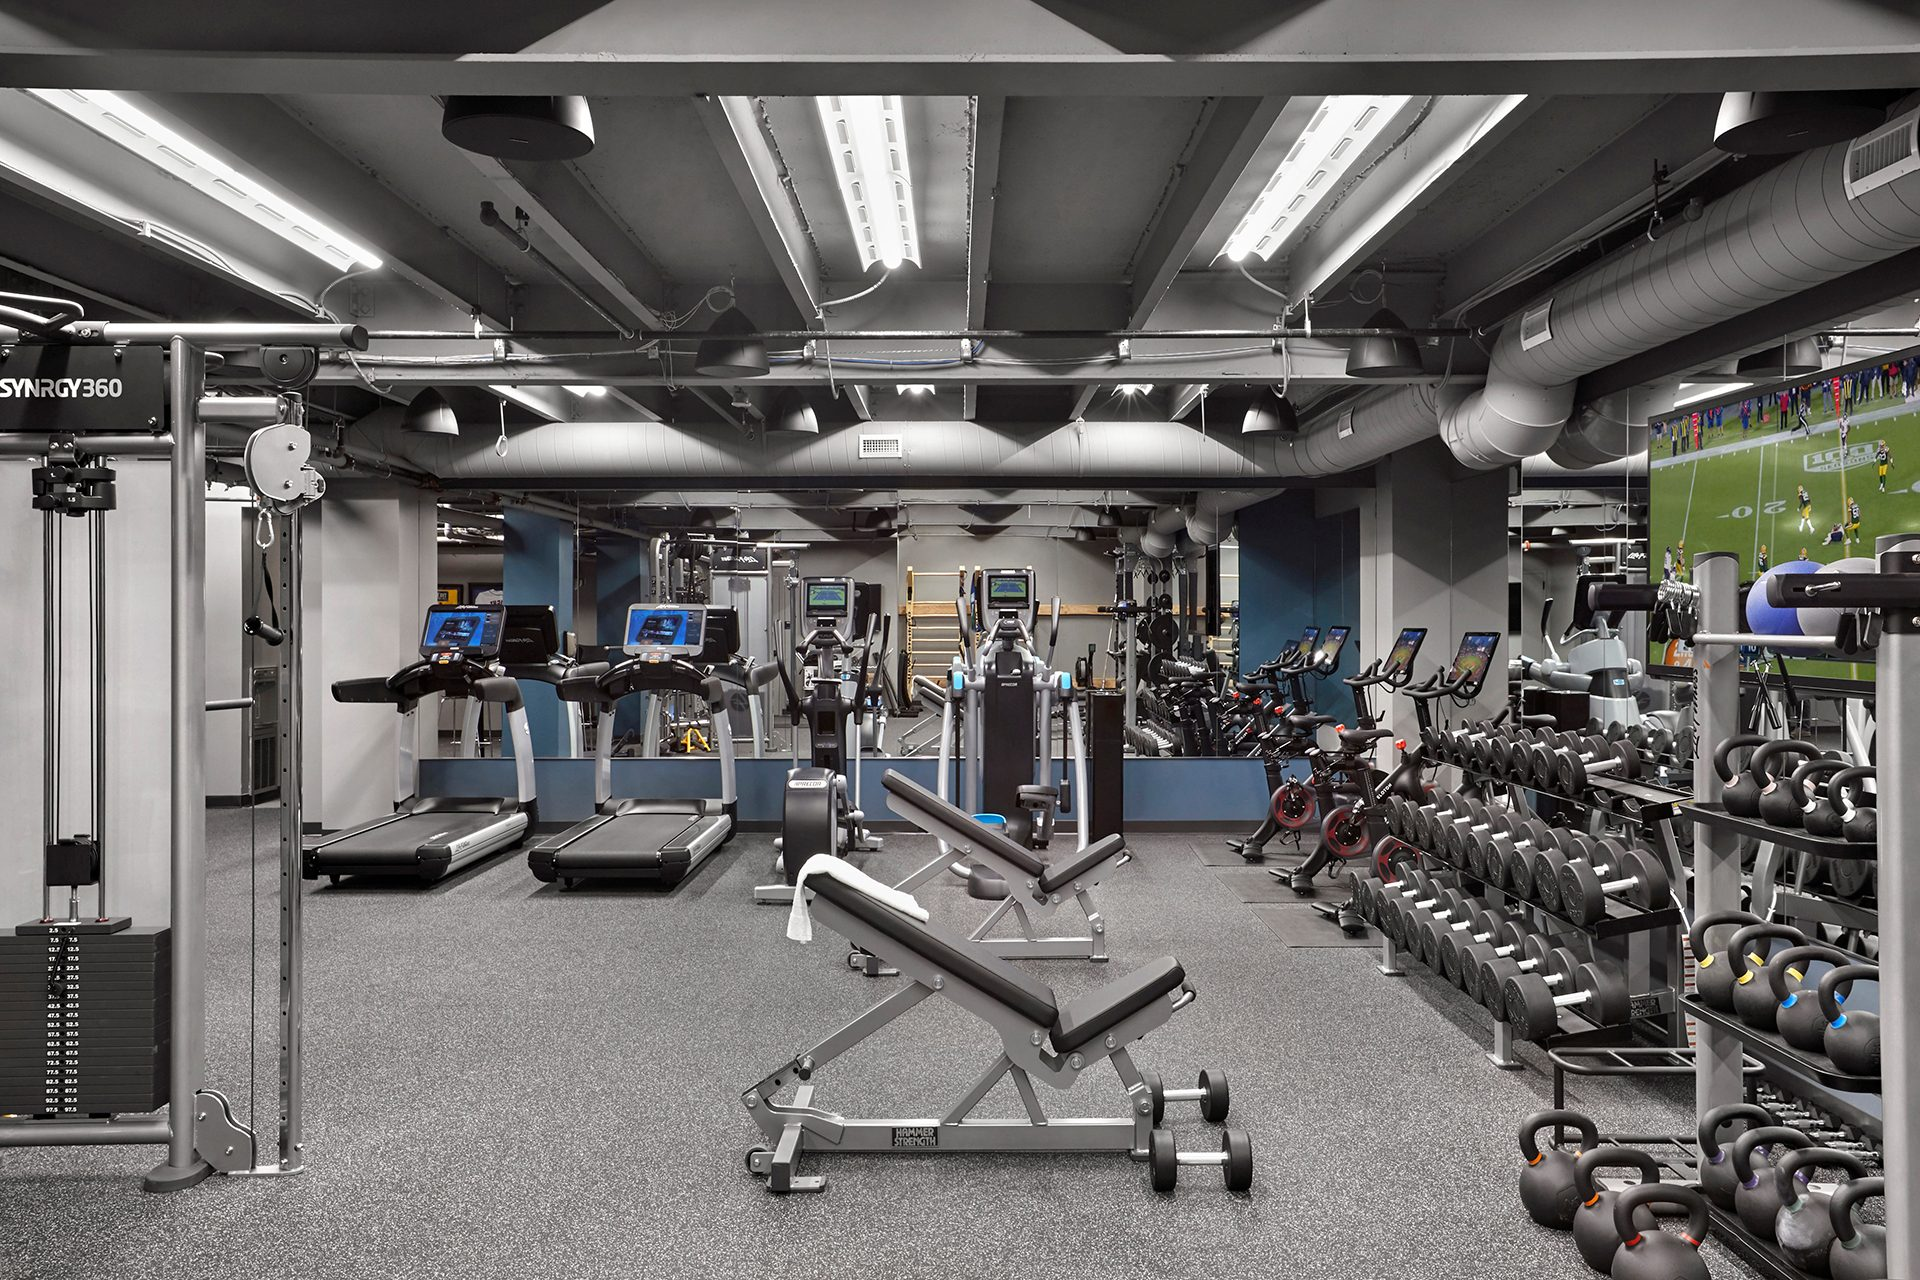 Energy Capital Partners (ECP) onsite gym